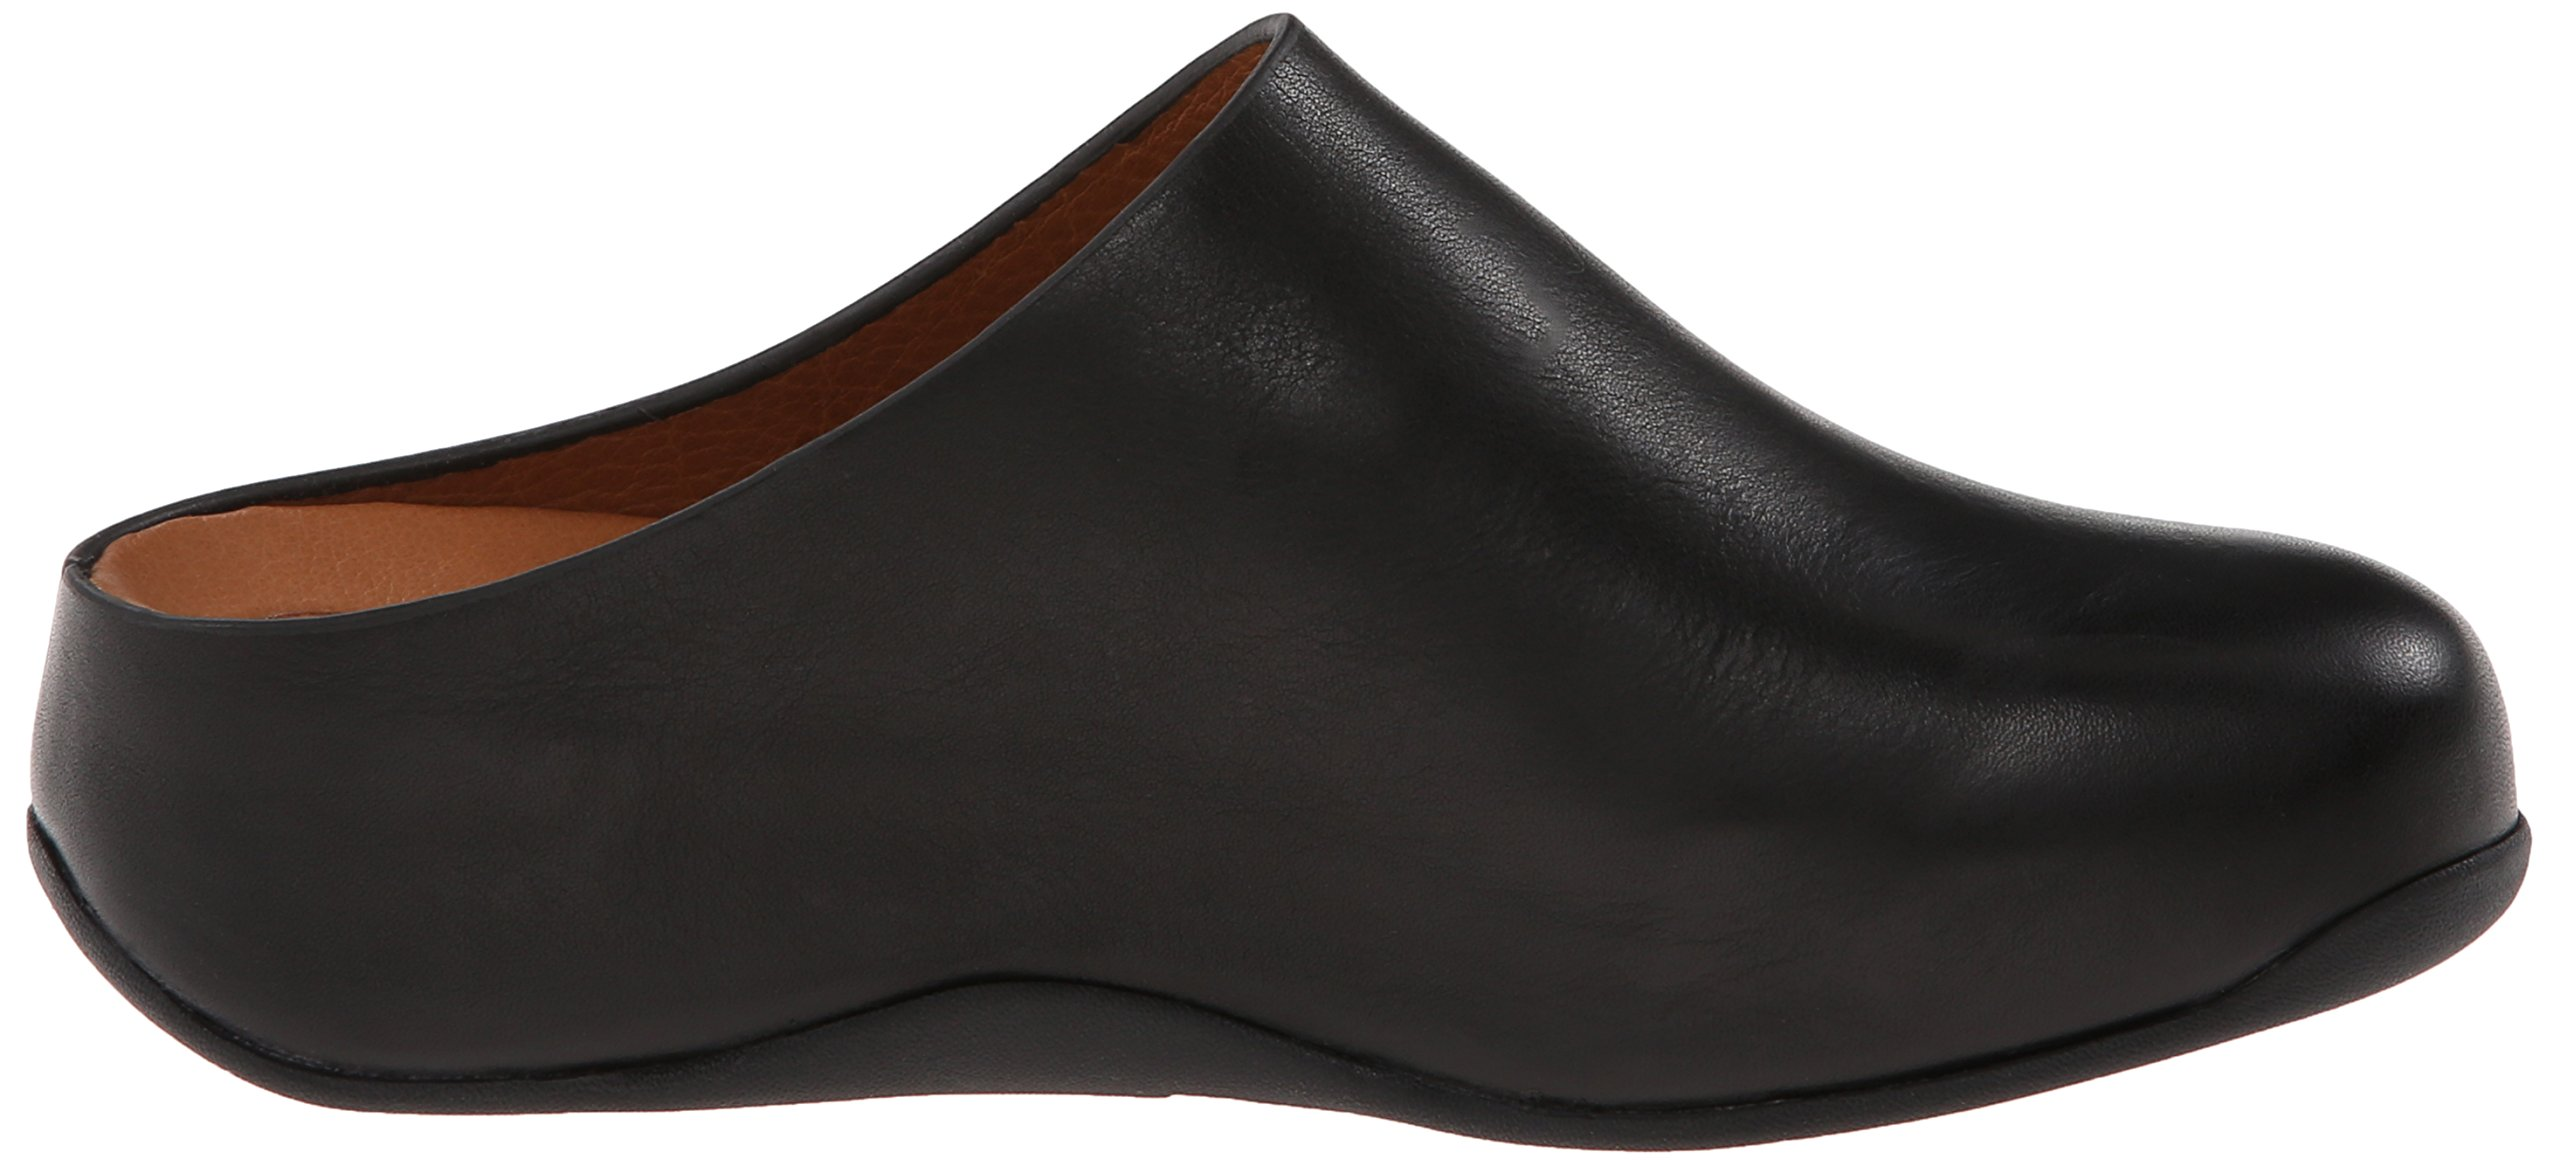 FitFlop Women's Shuv Leather Clog,Black,5 M US by FitFlop (Image #7)